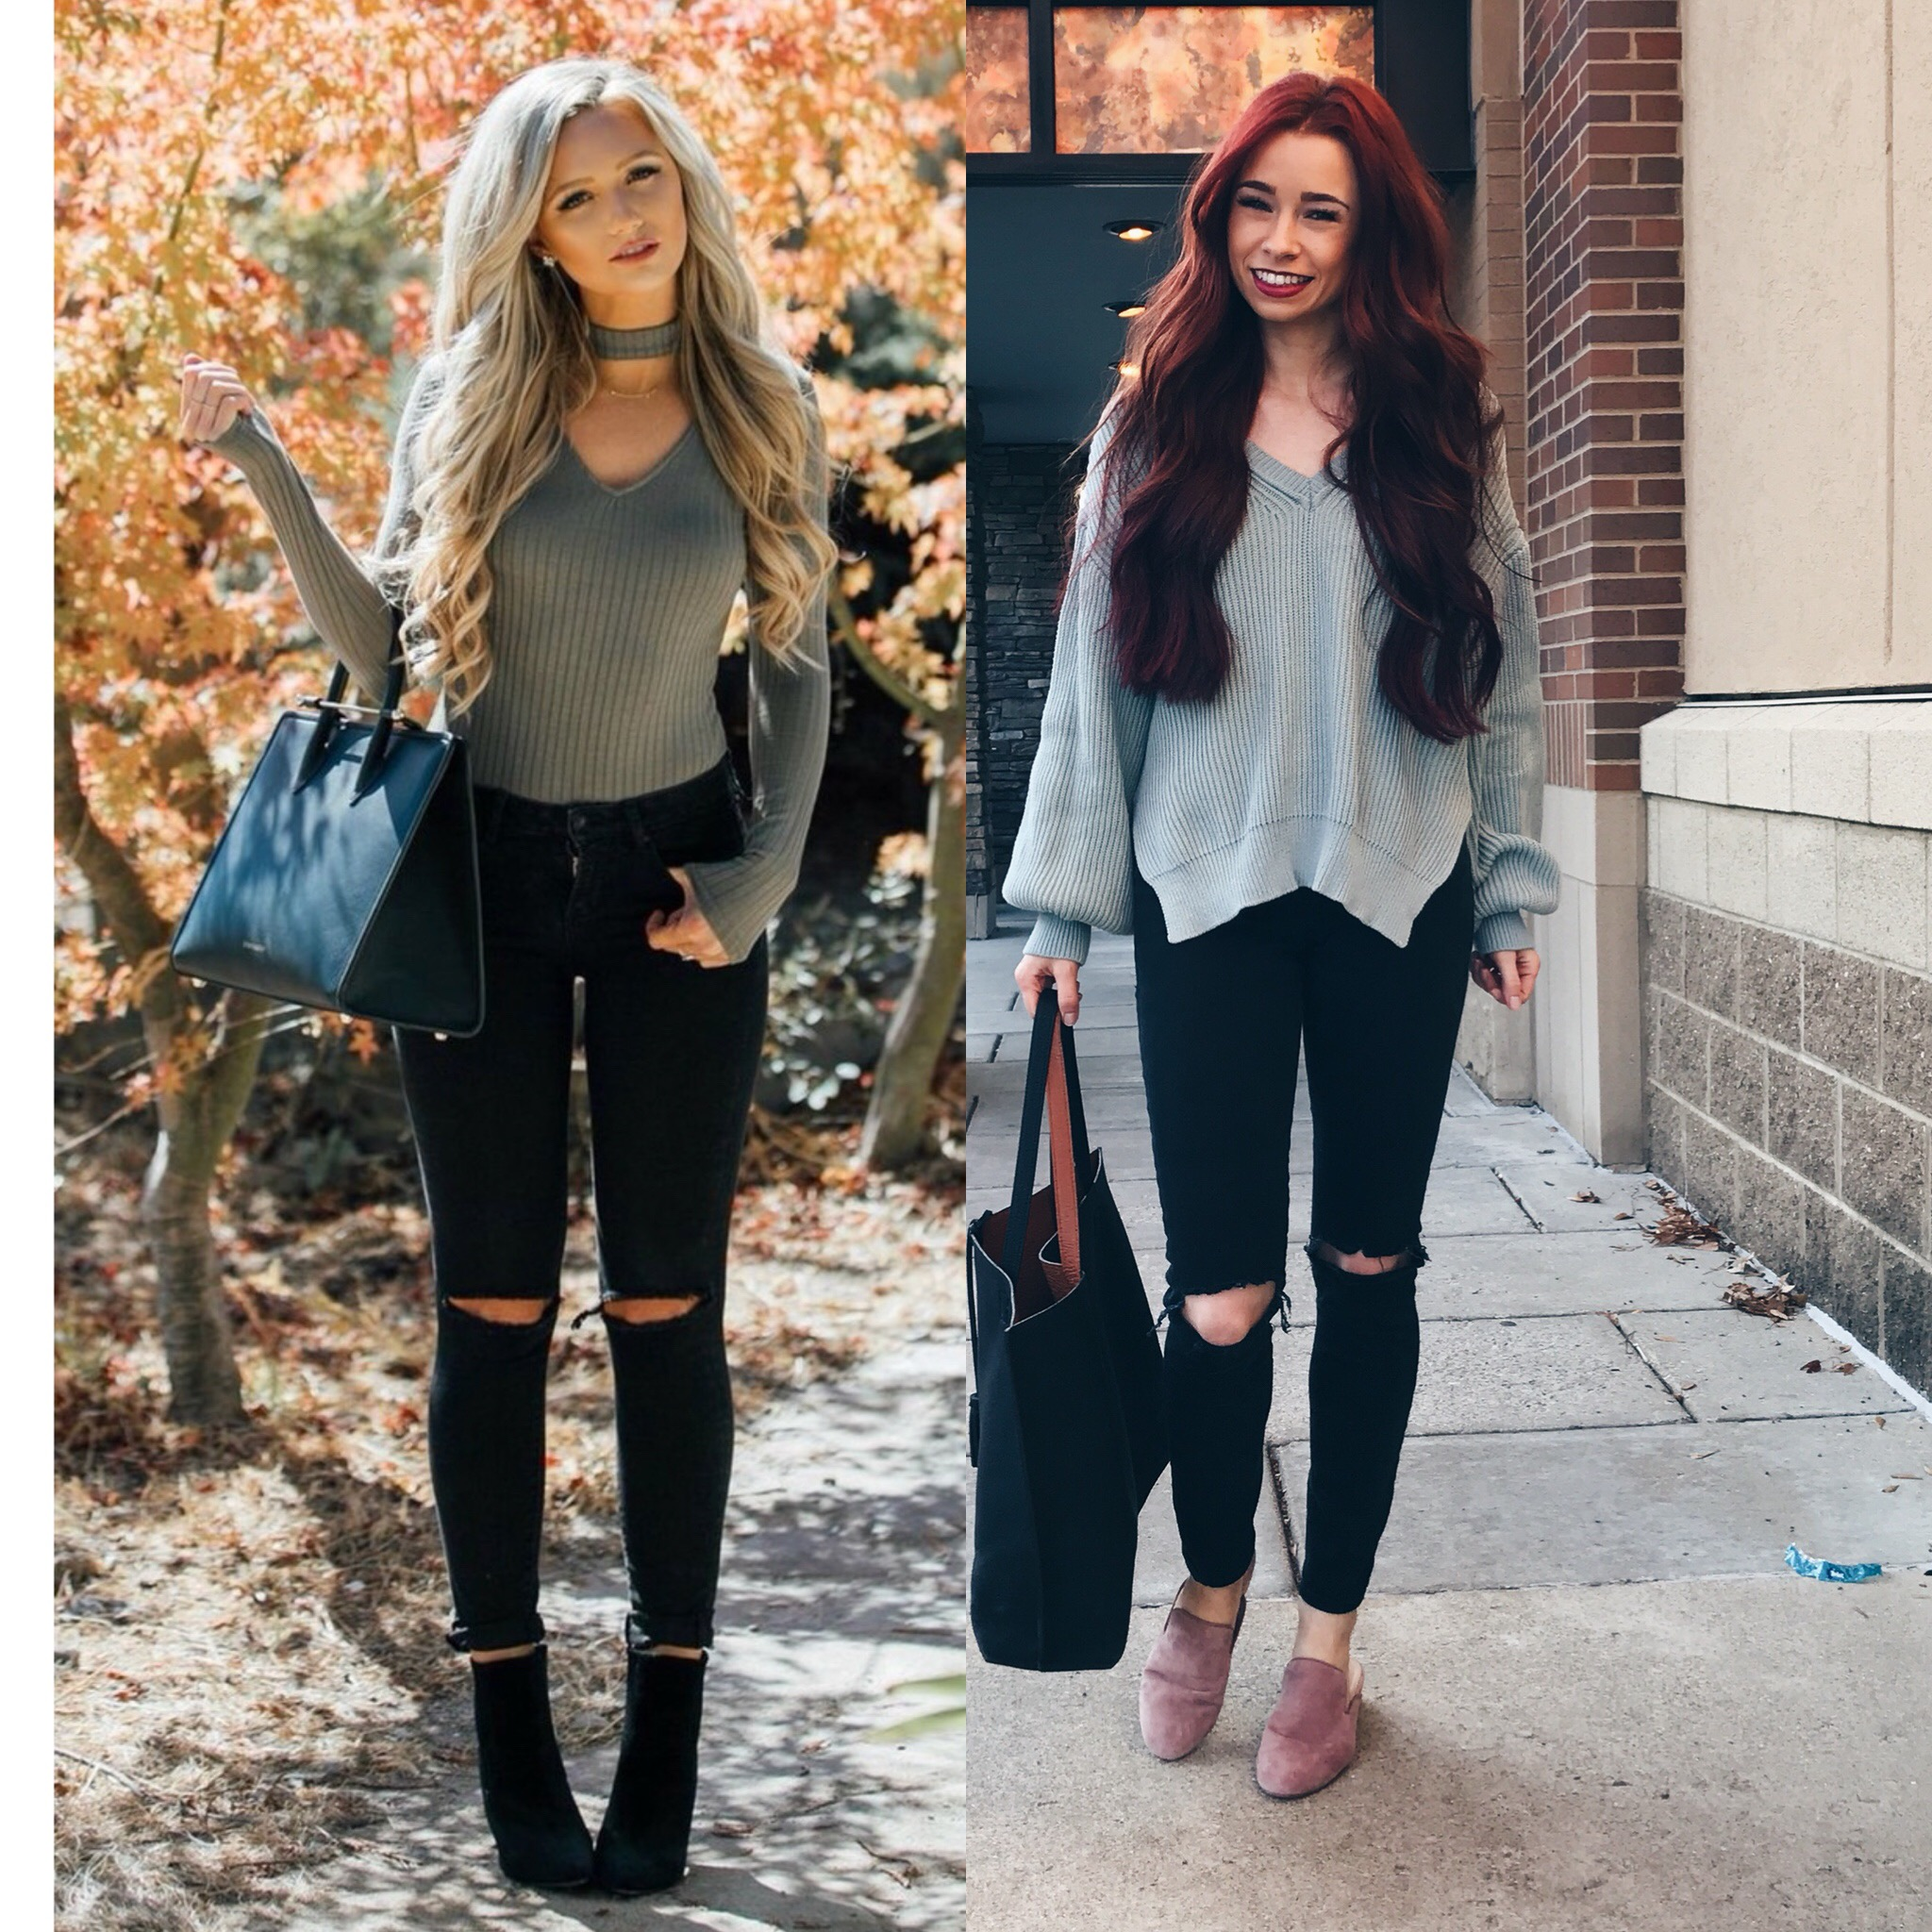 Pinterest Challenge by Indianapolis fashion blogger Trendy in Indy